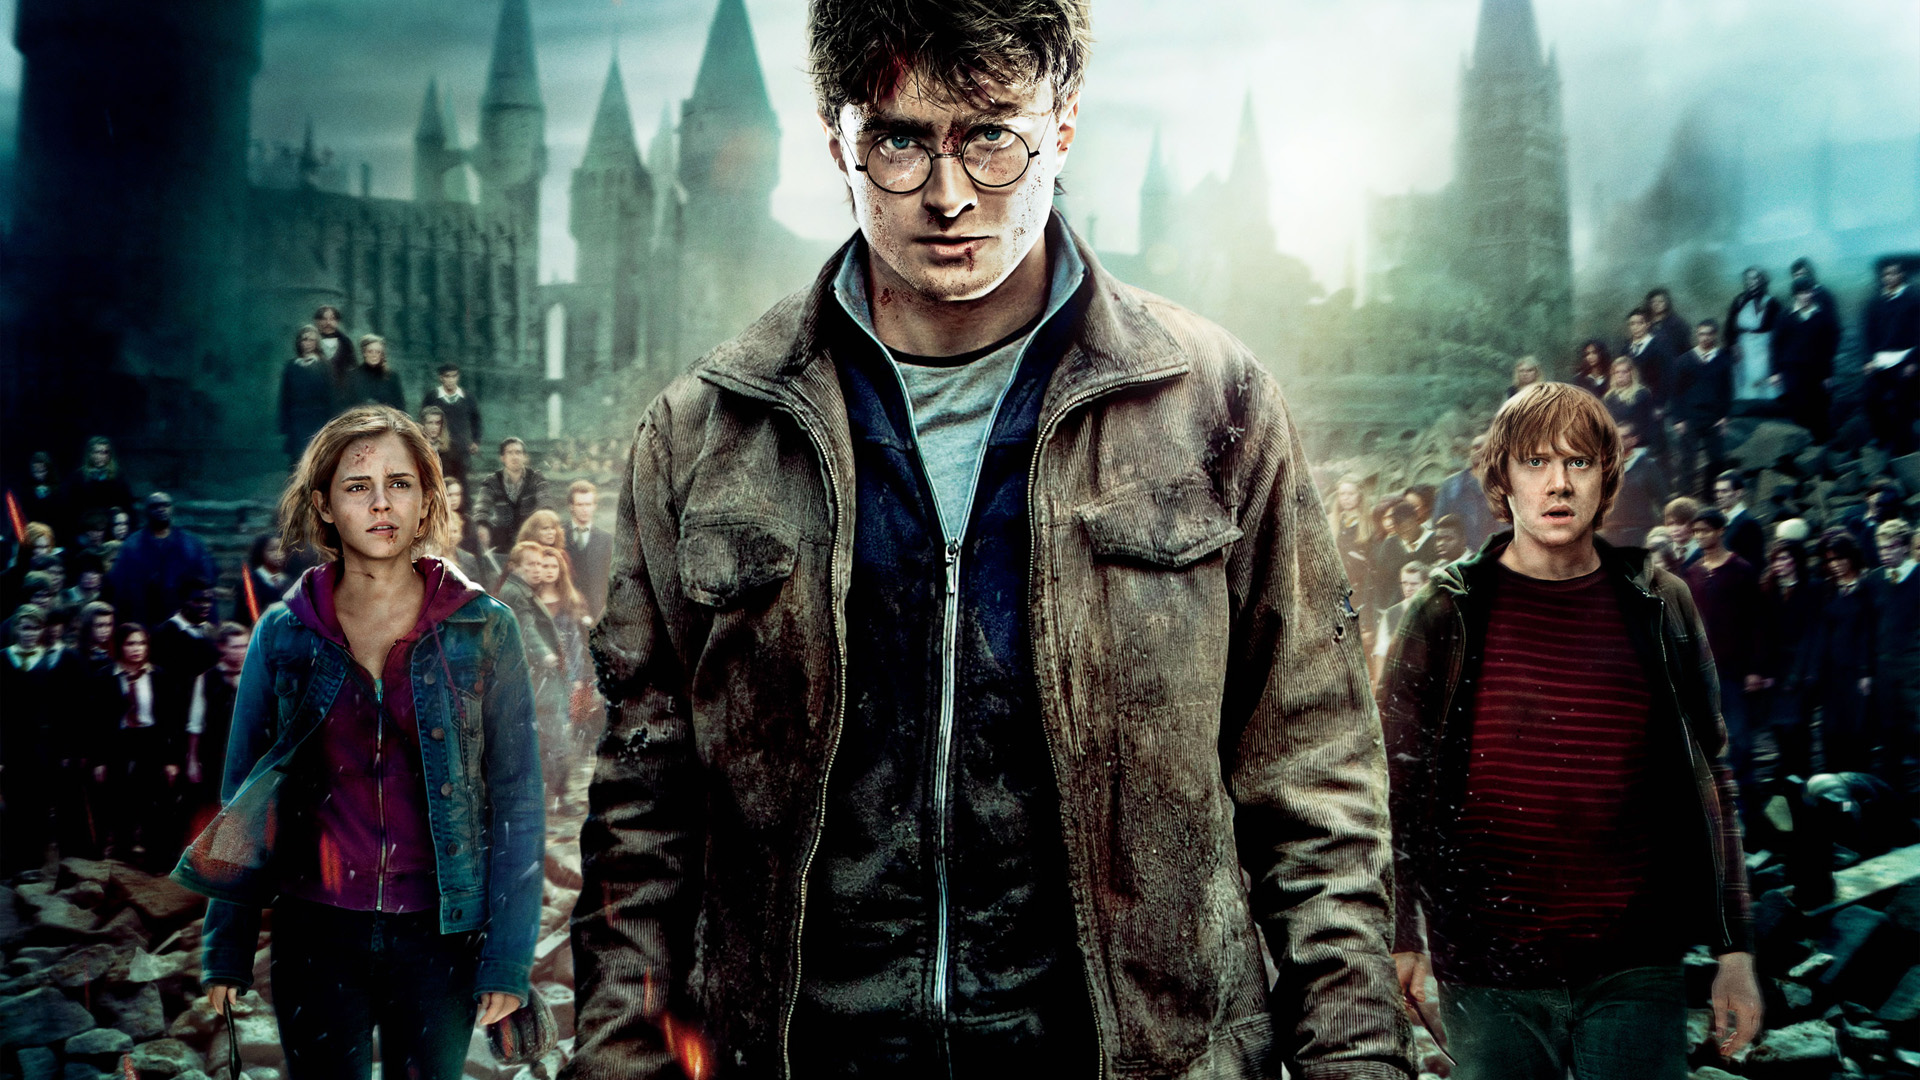 Must see Wallpaper Harry Potter 1080p - 676898  You Should Have_909288.jpg